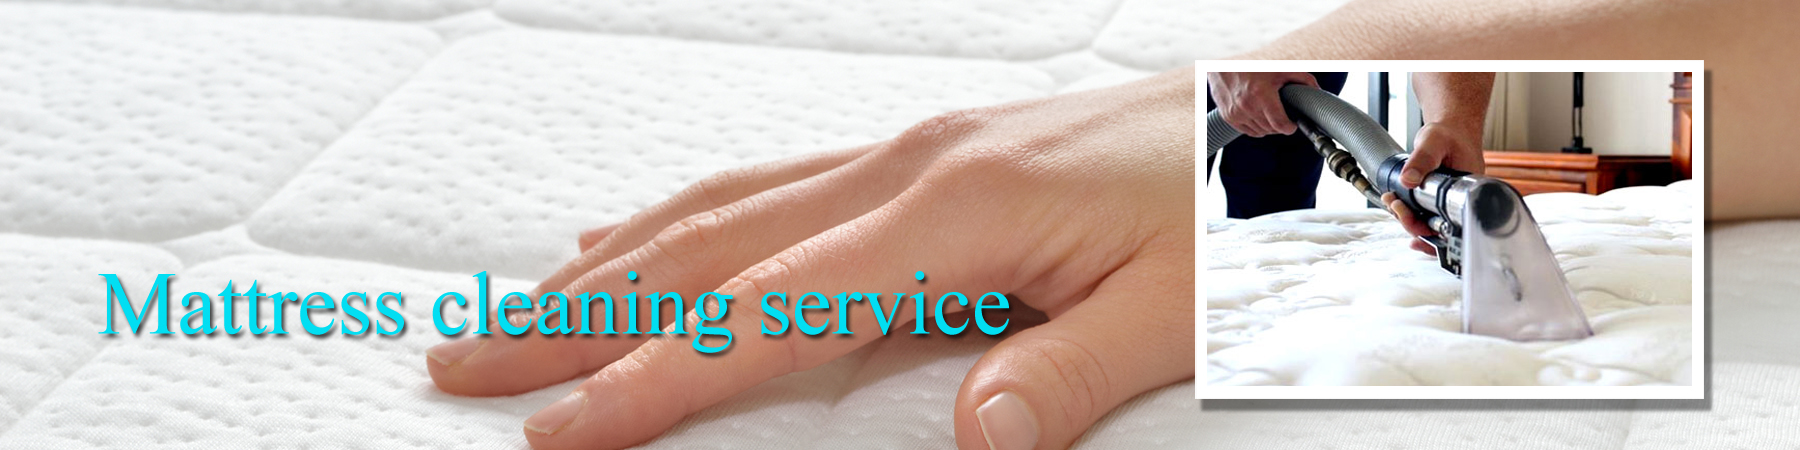 JR Mattress Cleaning Rainham J R Cleaning